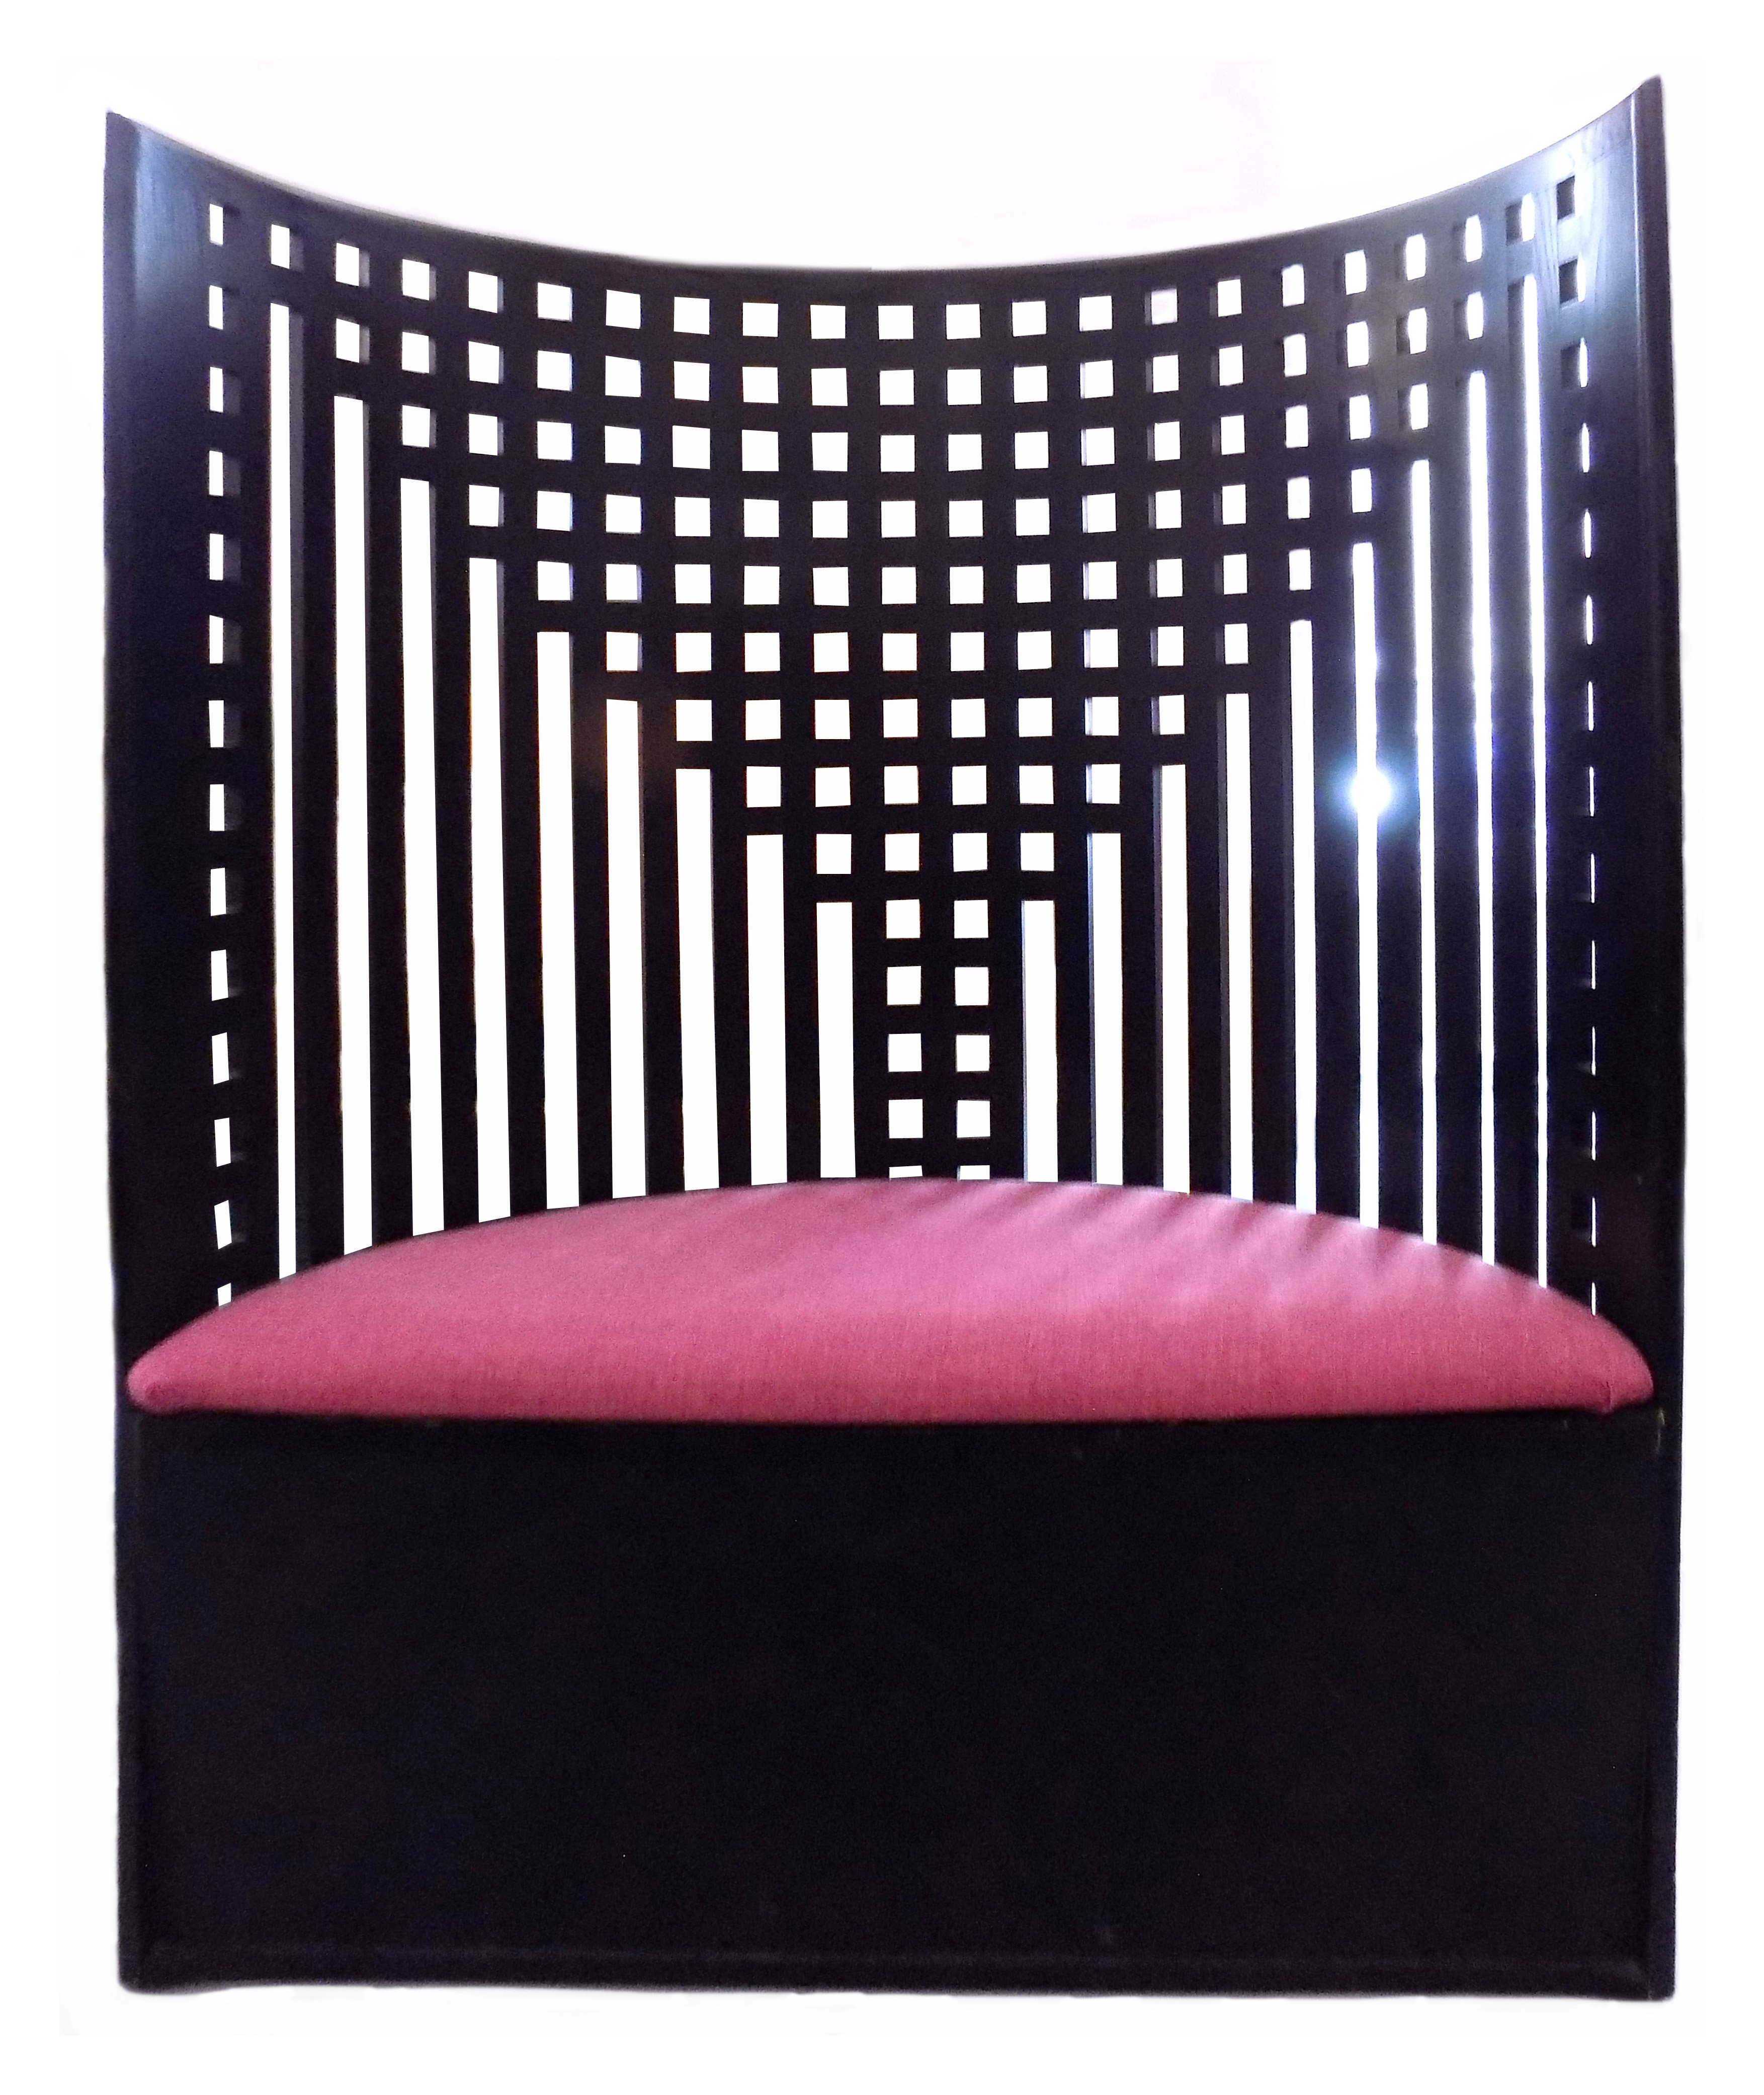 willow chair by charles renee mackintosh 61618. Black Bedroom Furniture Sets. Home Design Ideas